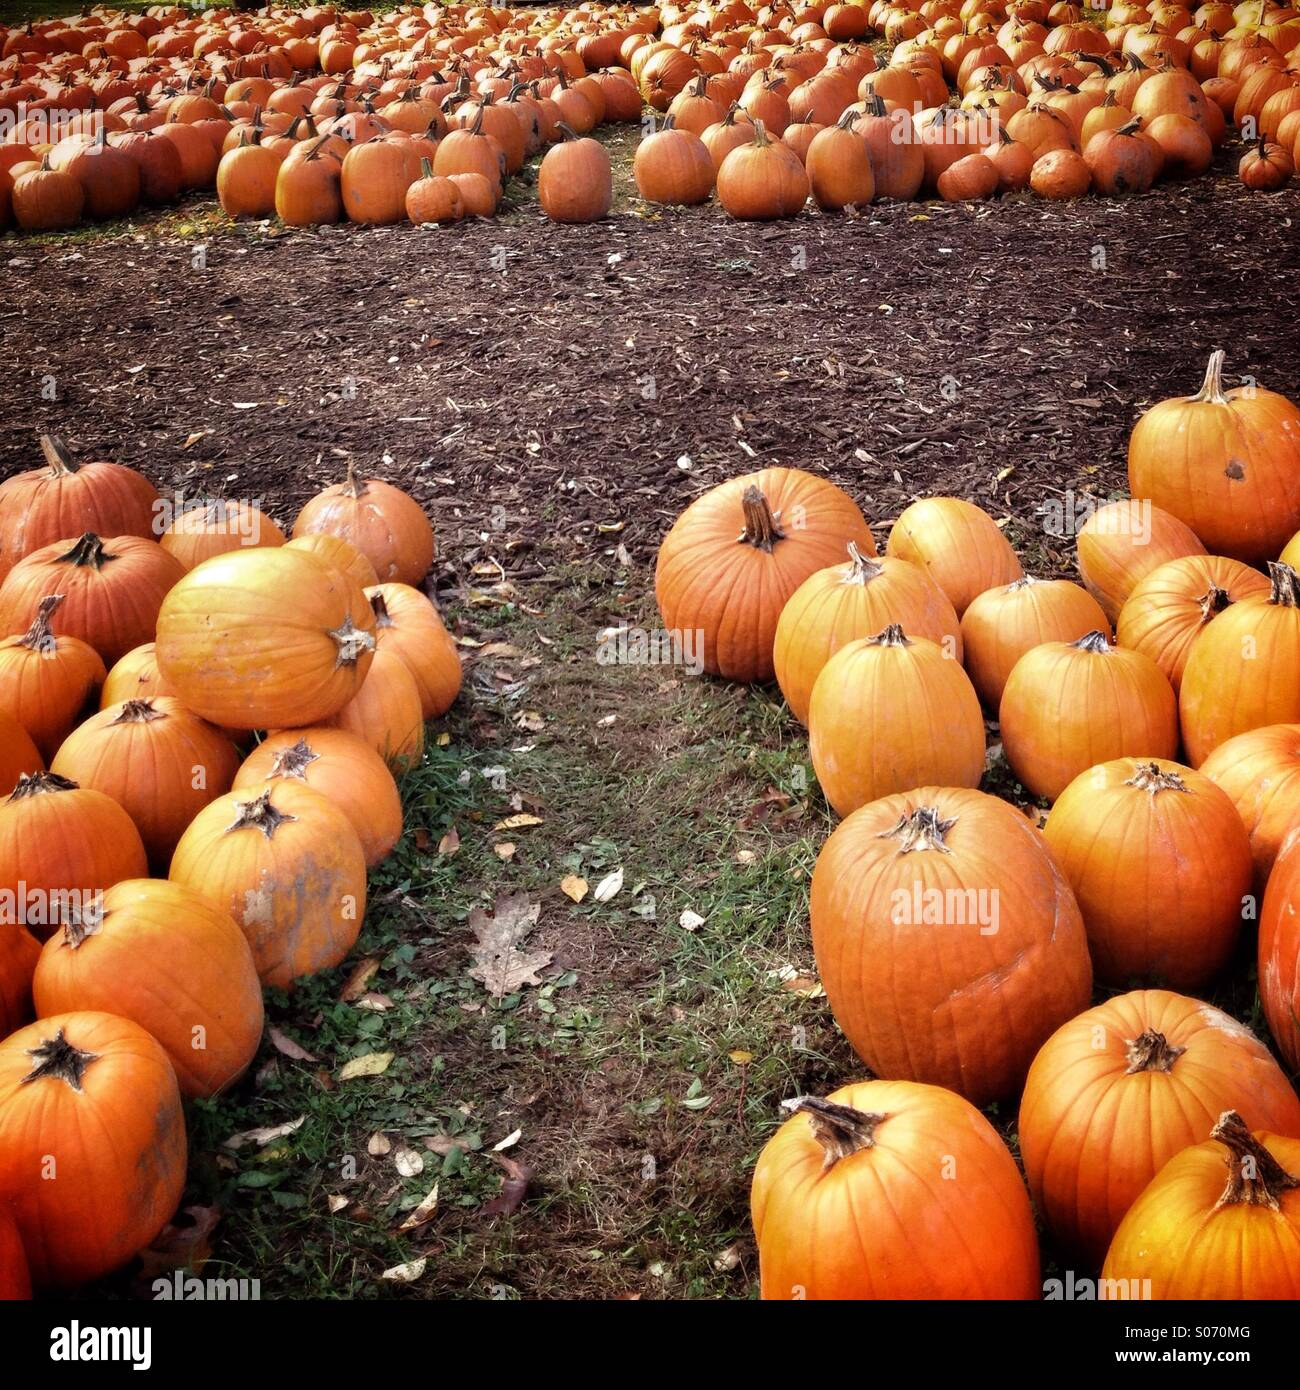 Pumpkins ready for sale - Stock Image